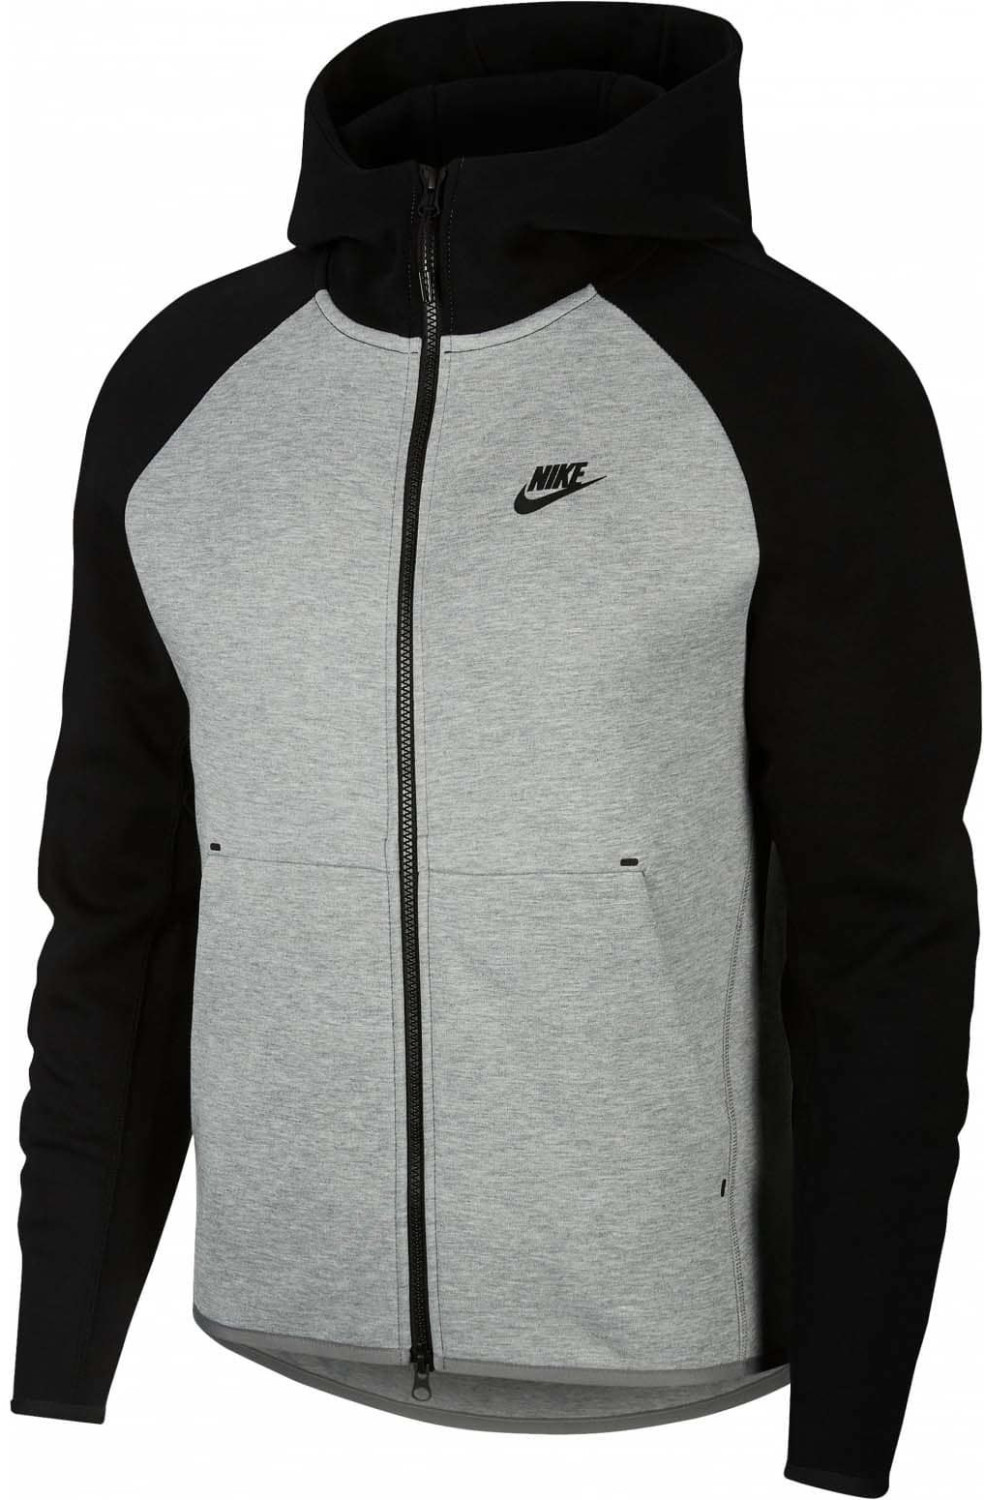 Buy Nike Men S Full Zip Hoodie Tech Fleece From 39 99 Compare Prices On Idealo Co Uk